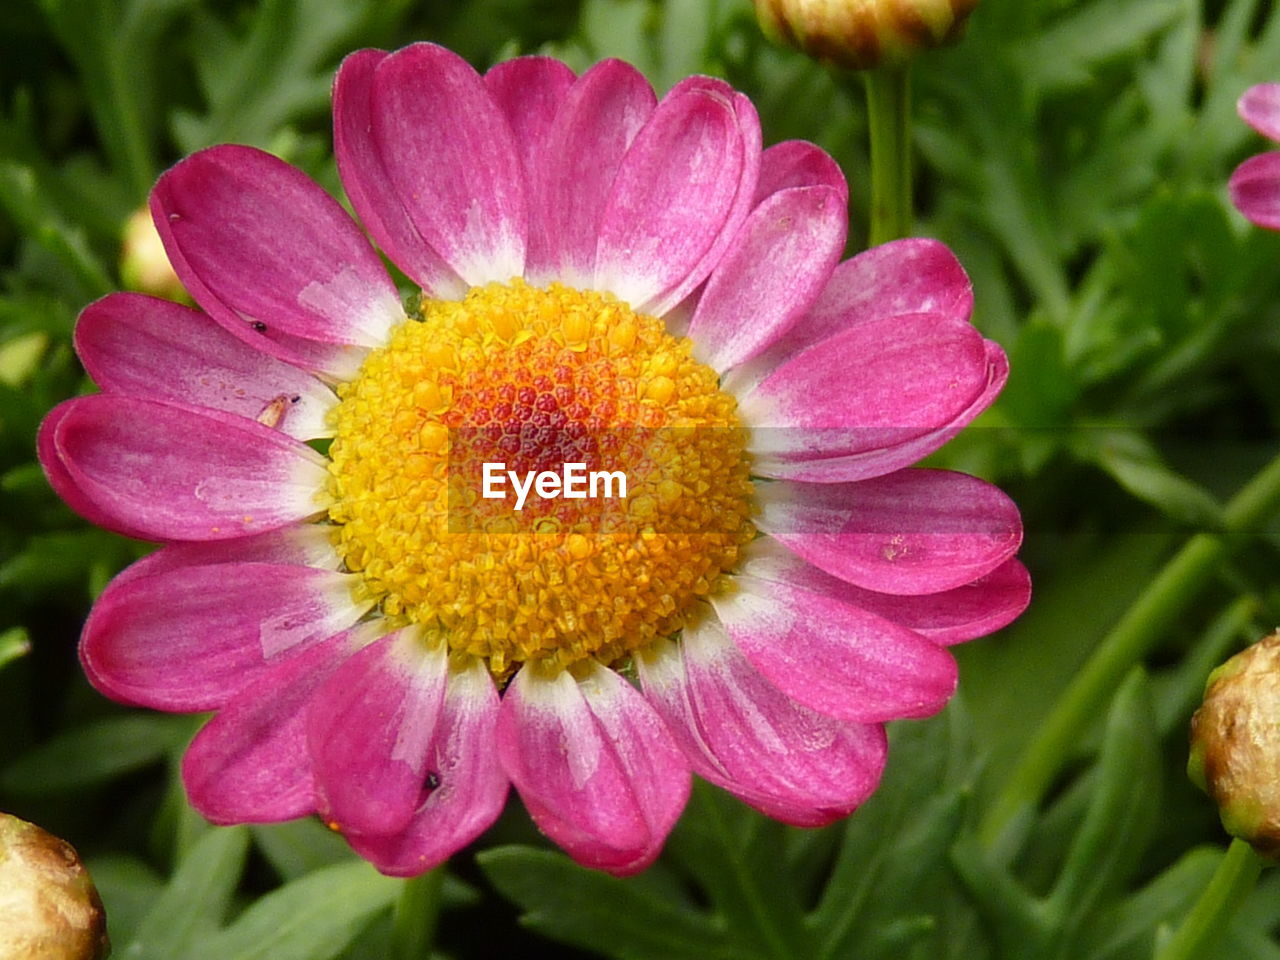 flower, petal, beauty in nature, nature, fragility, growth, freshness, flower head, plant, no people, close-up, pink color, outdoors, blooming, yellow, day